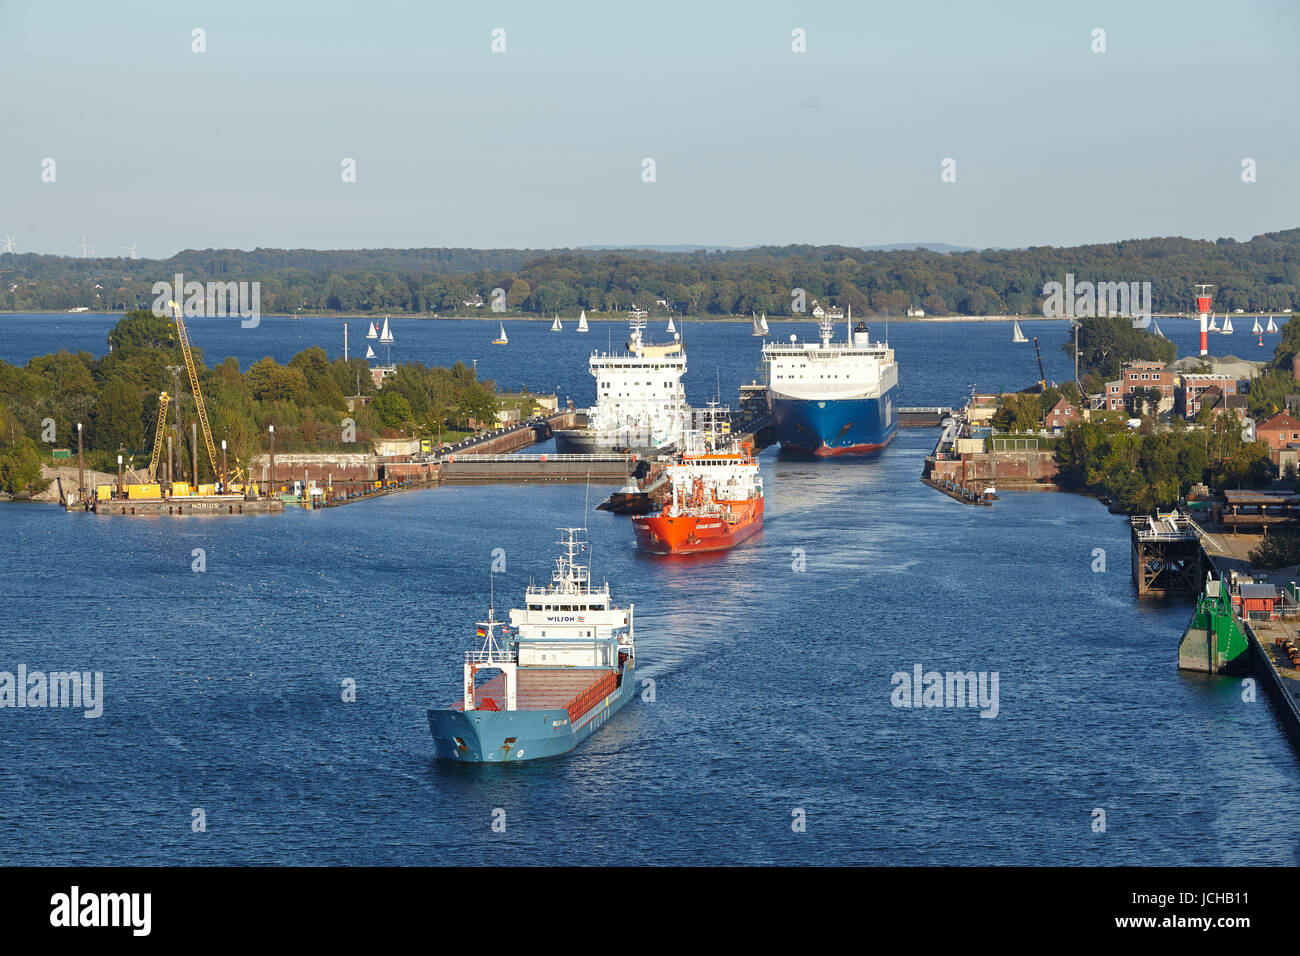 The genral cargo ship Wilson Hawk, tanker Eduard Essberger and Ro-ro cargo vessel Finnbreeze are leaving the lock - Stock Image